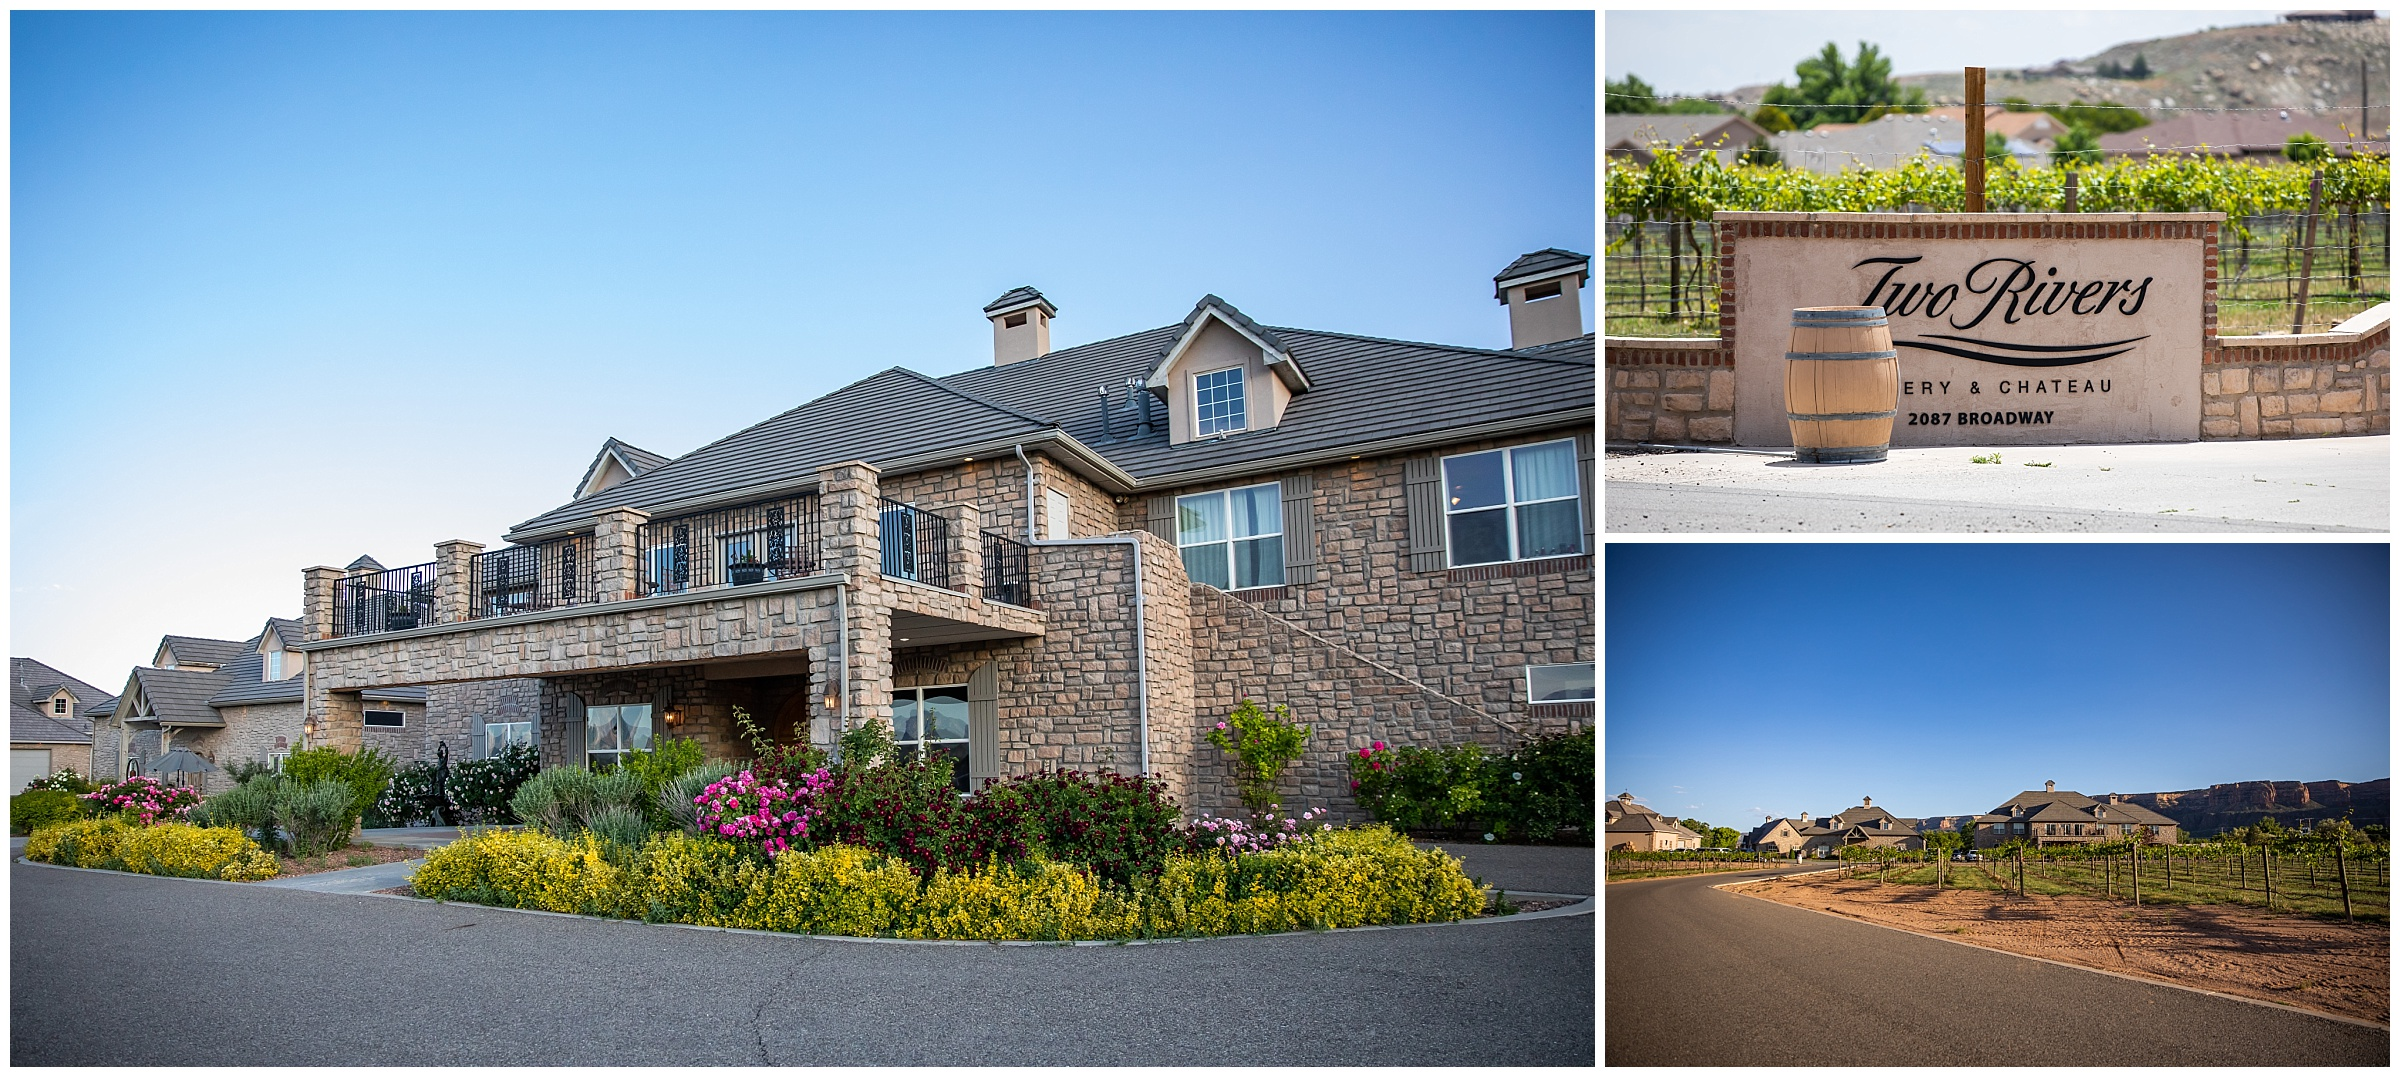 Vineyards surround  Two Rivers Winery and Chateau , giving the venue a secluded setting away from roads and other properties.